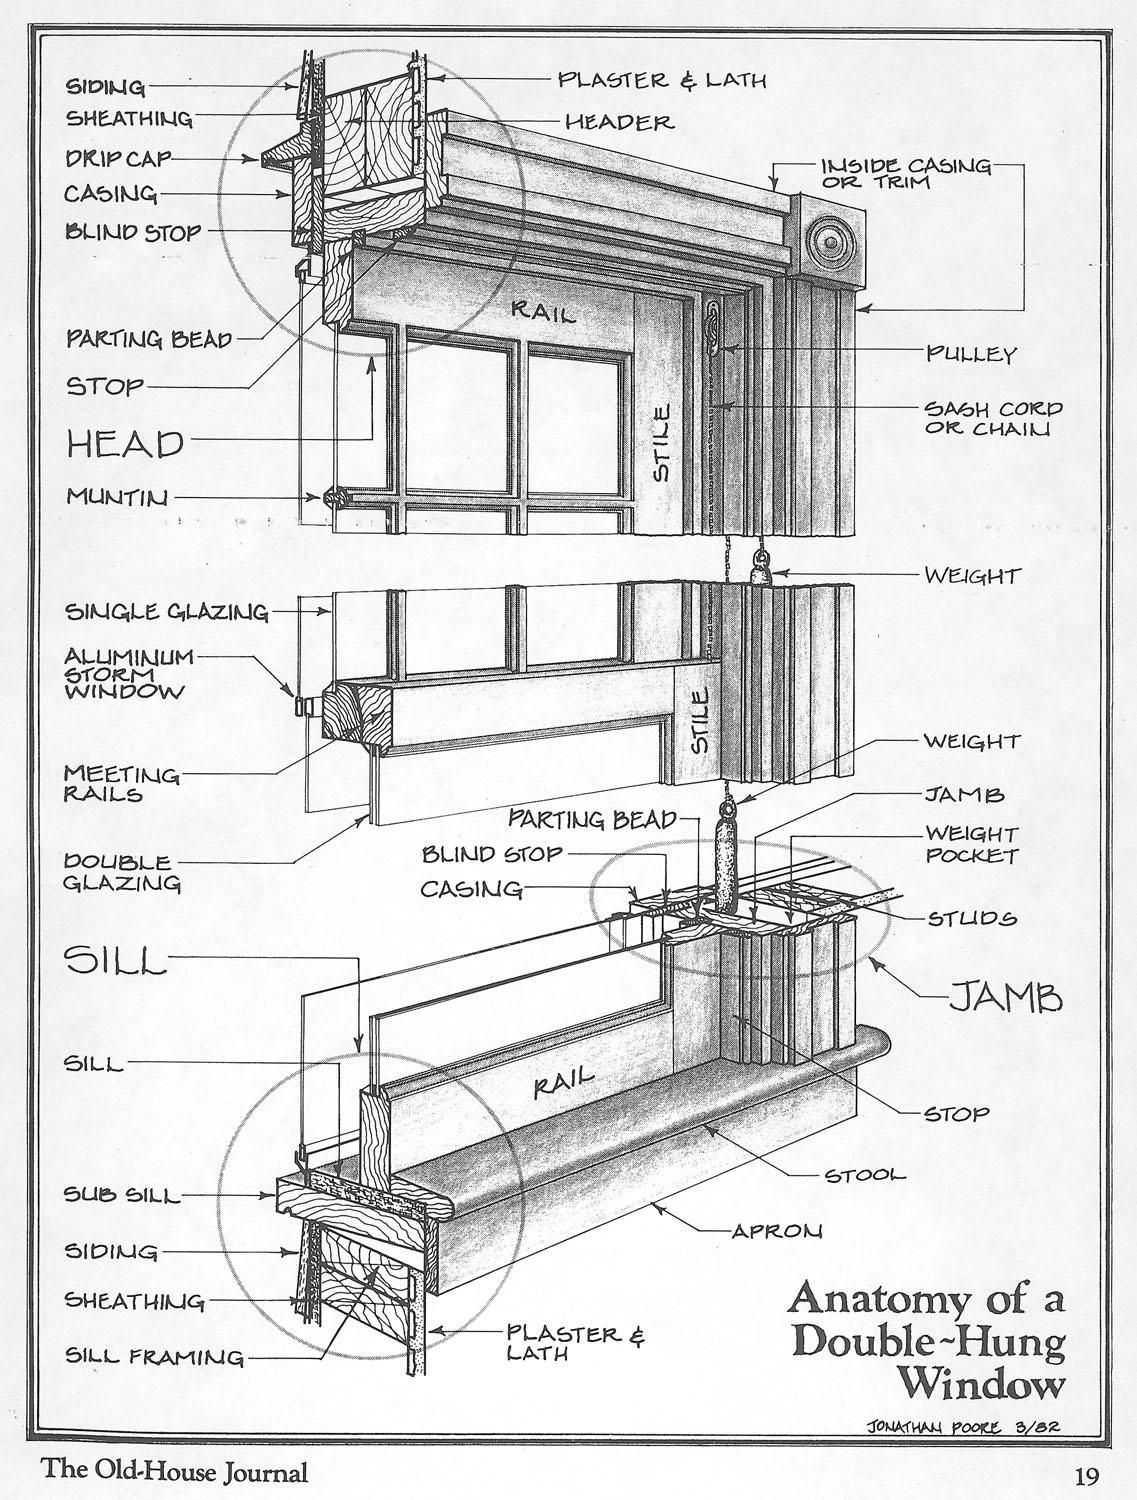 parts of a window frame diagram 05 gsxr 600 headlight wiring anatomy double hung windows pinterest